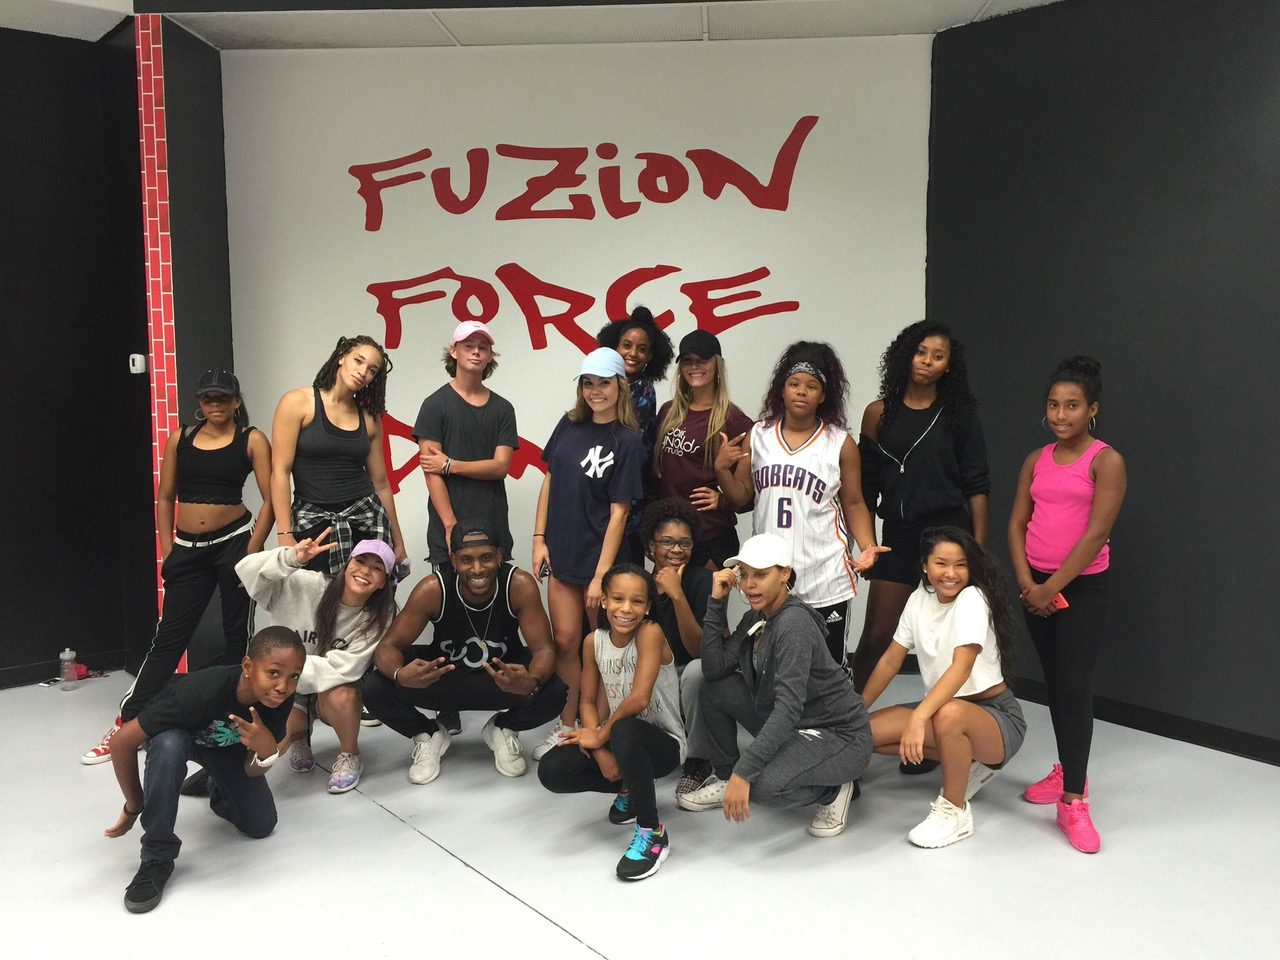 Fuzion Force Dancers